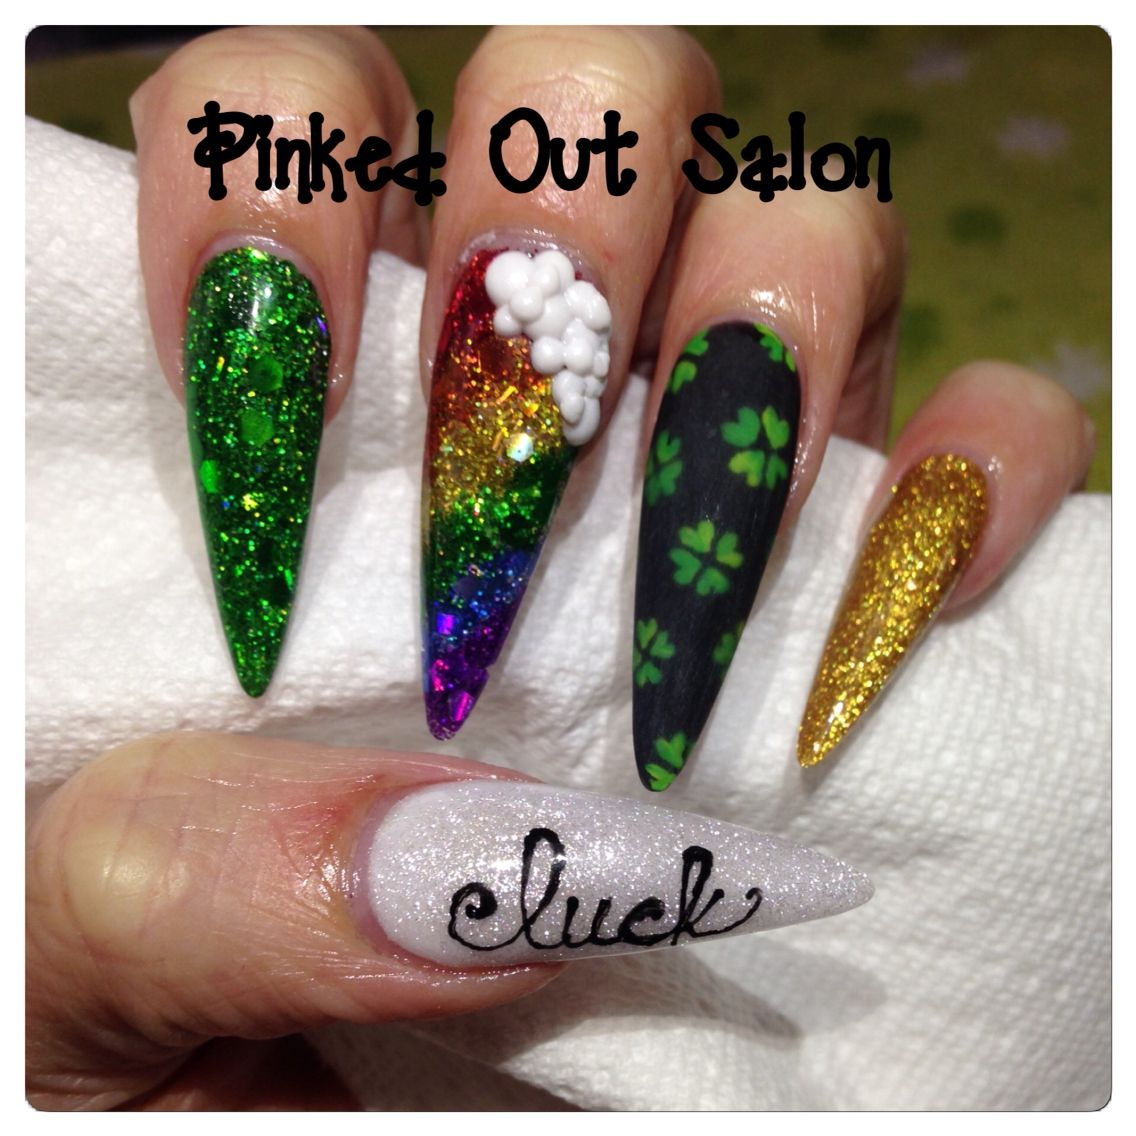 St Patrick S Day Nail Art Check Out Pinked Out Salon On Fb